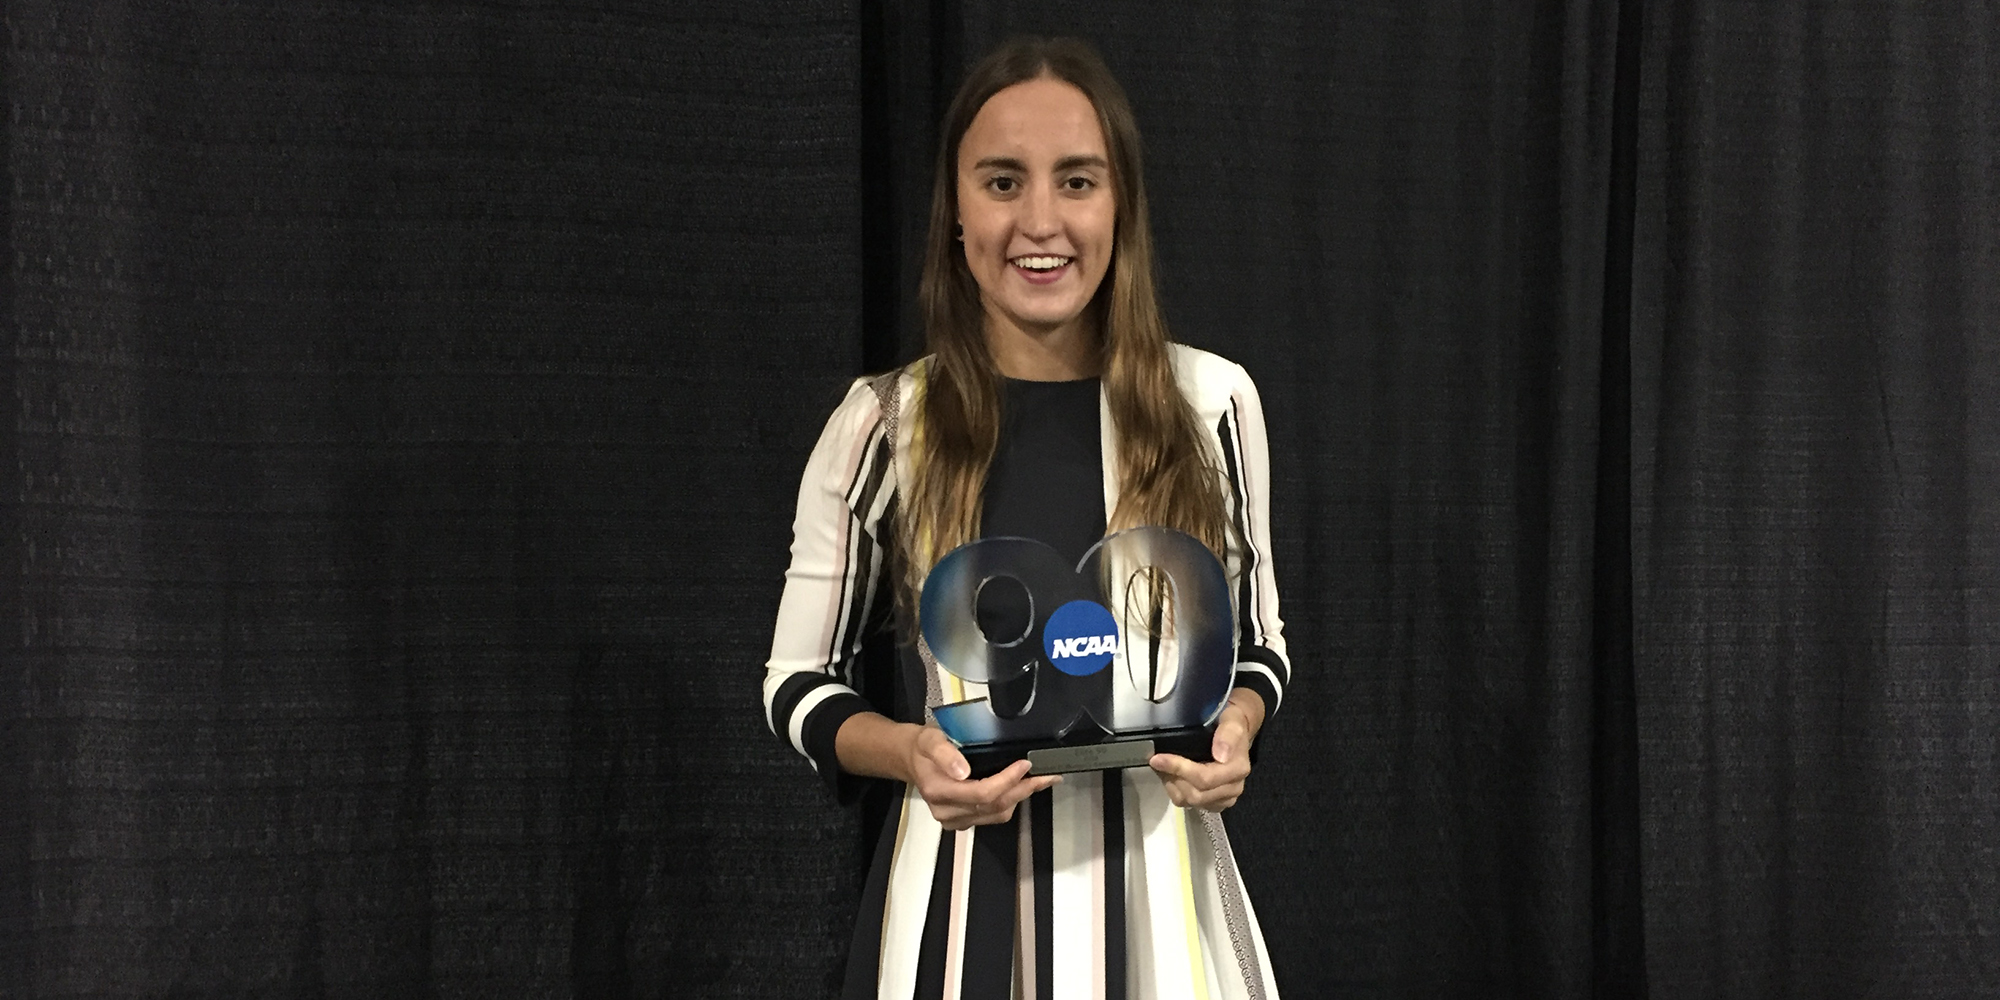 Berraud-Galea Repeats as Winner of Elite 90™ Award for NCAA Division II Women's Swimming Championship